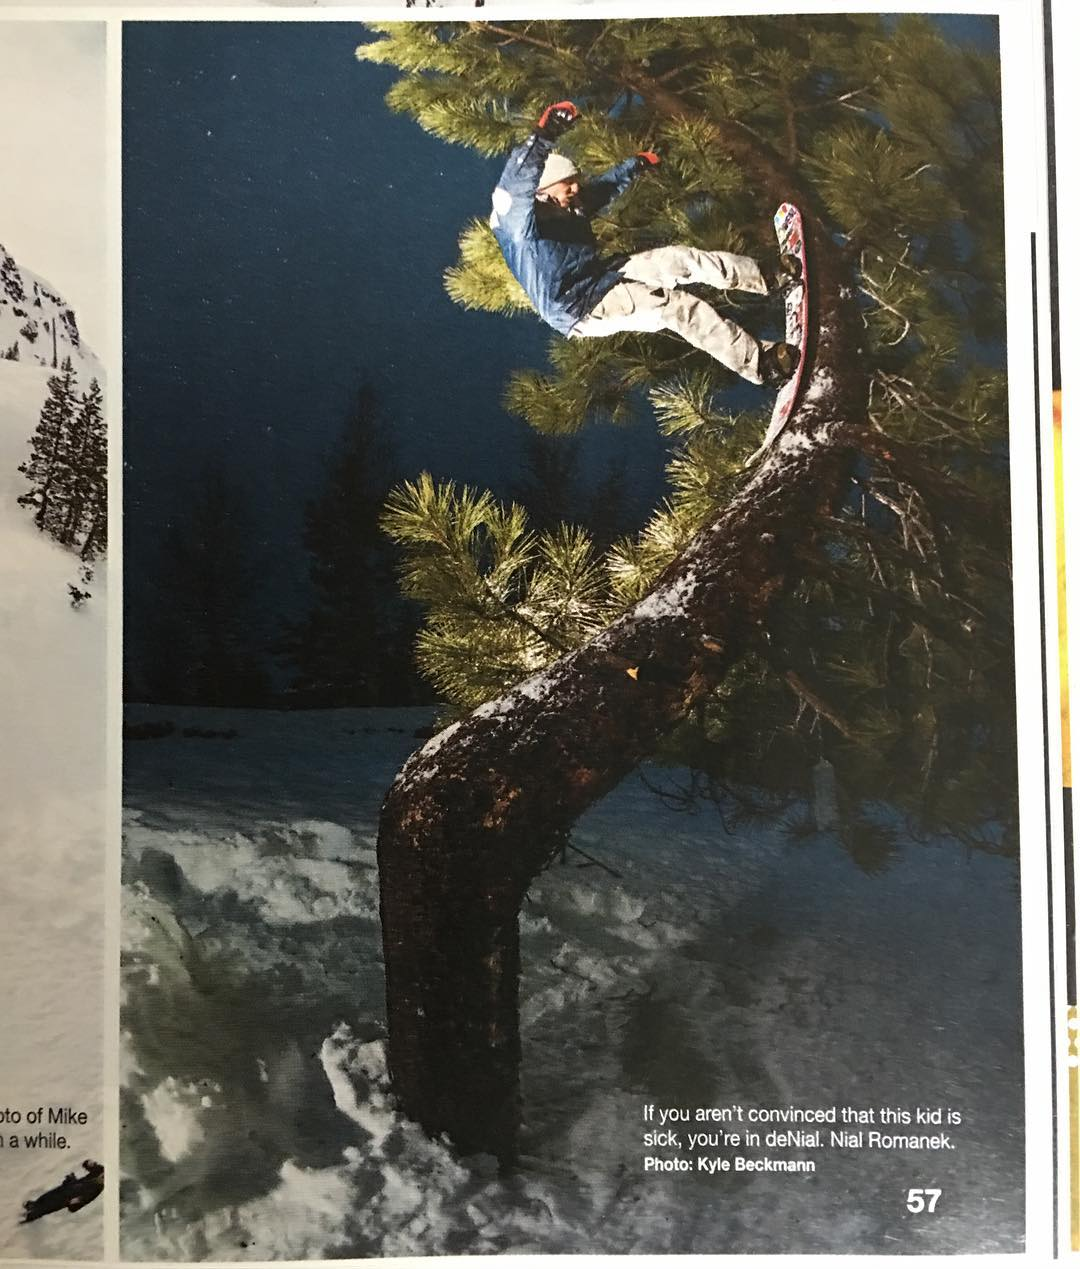 Sick shot of @nial_romanek in the first @snowboardermag , check it out.